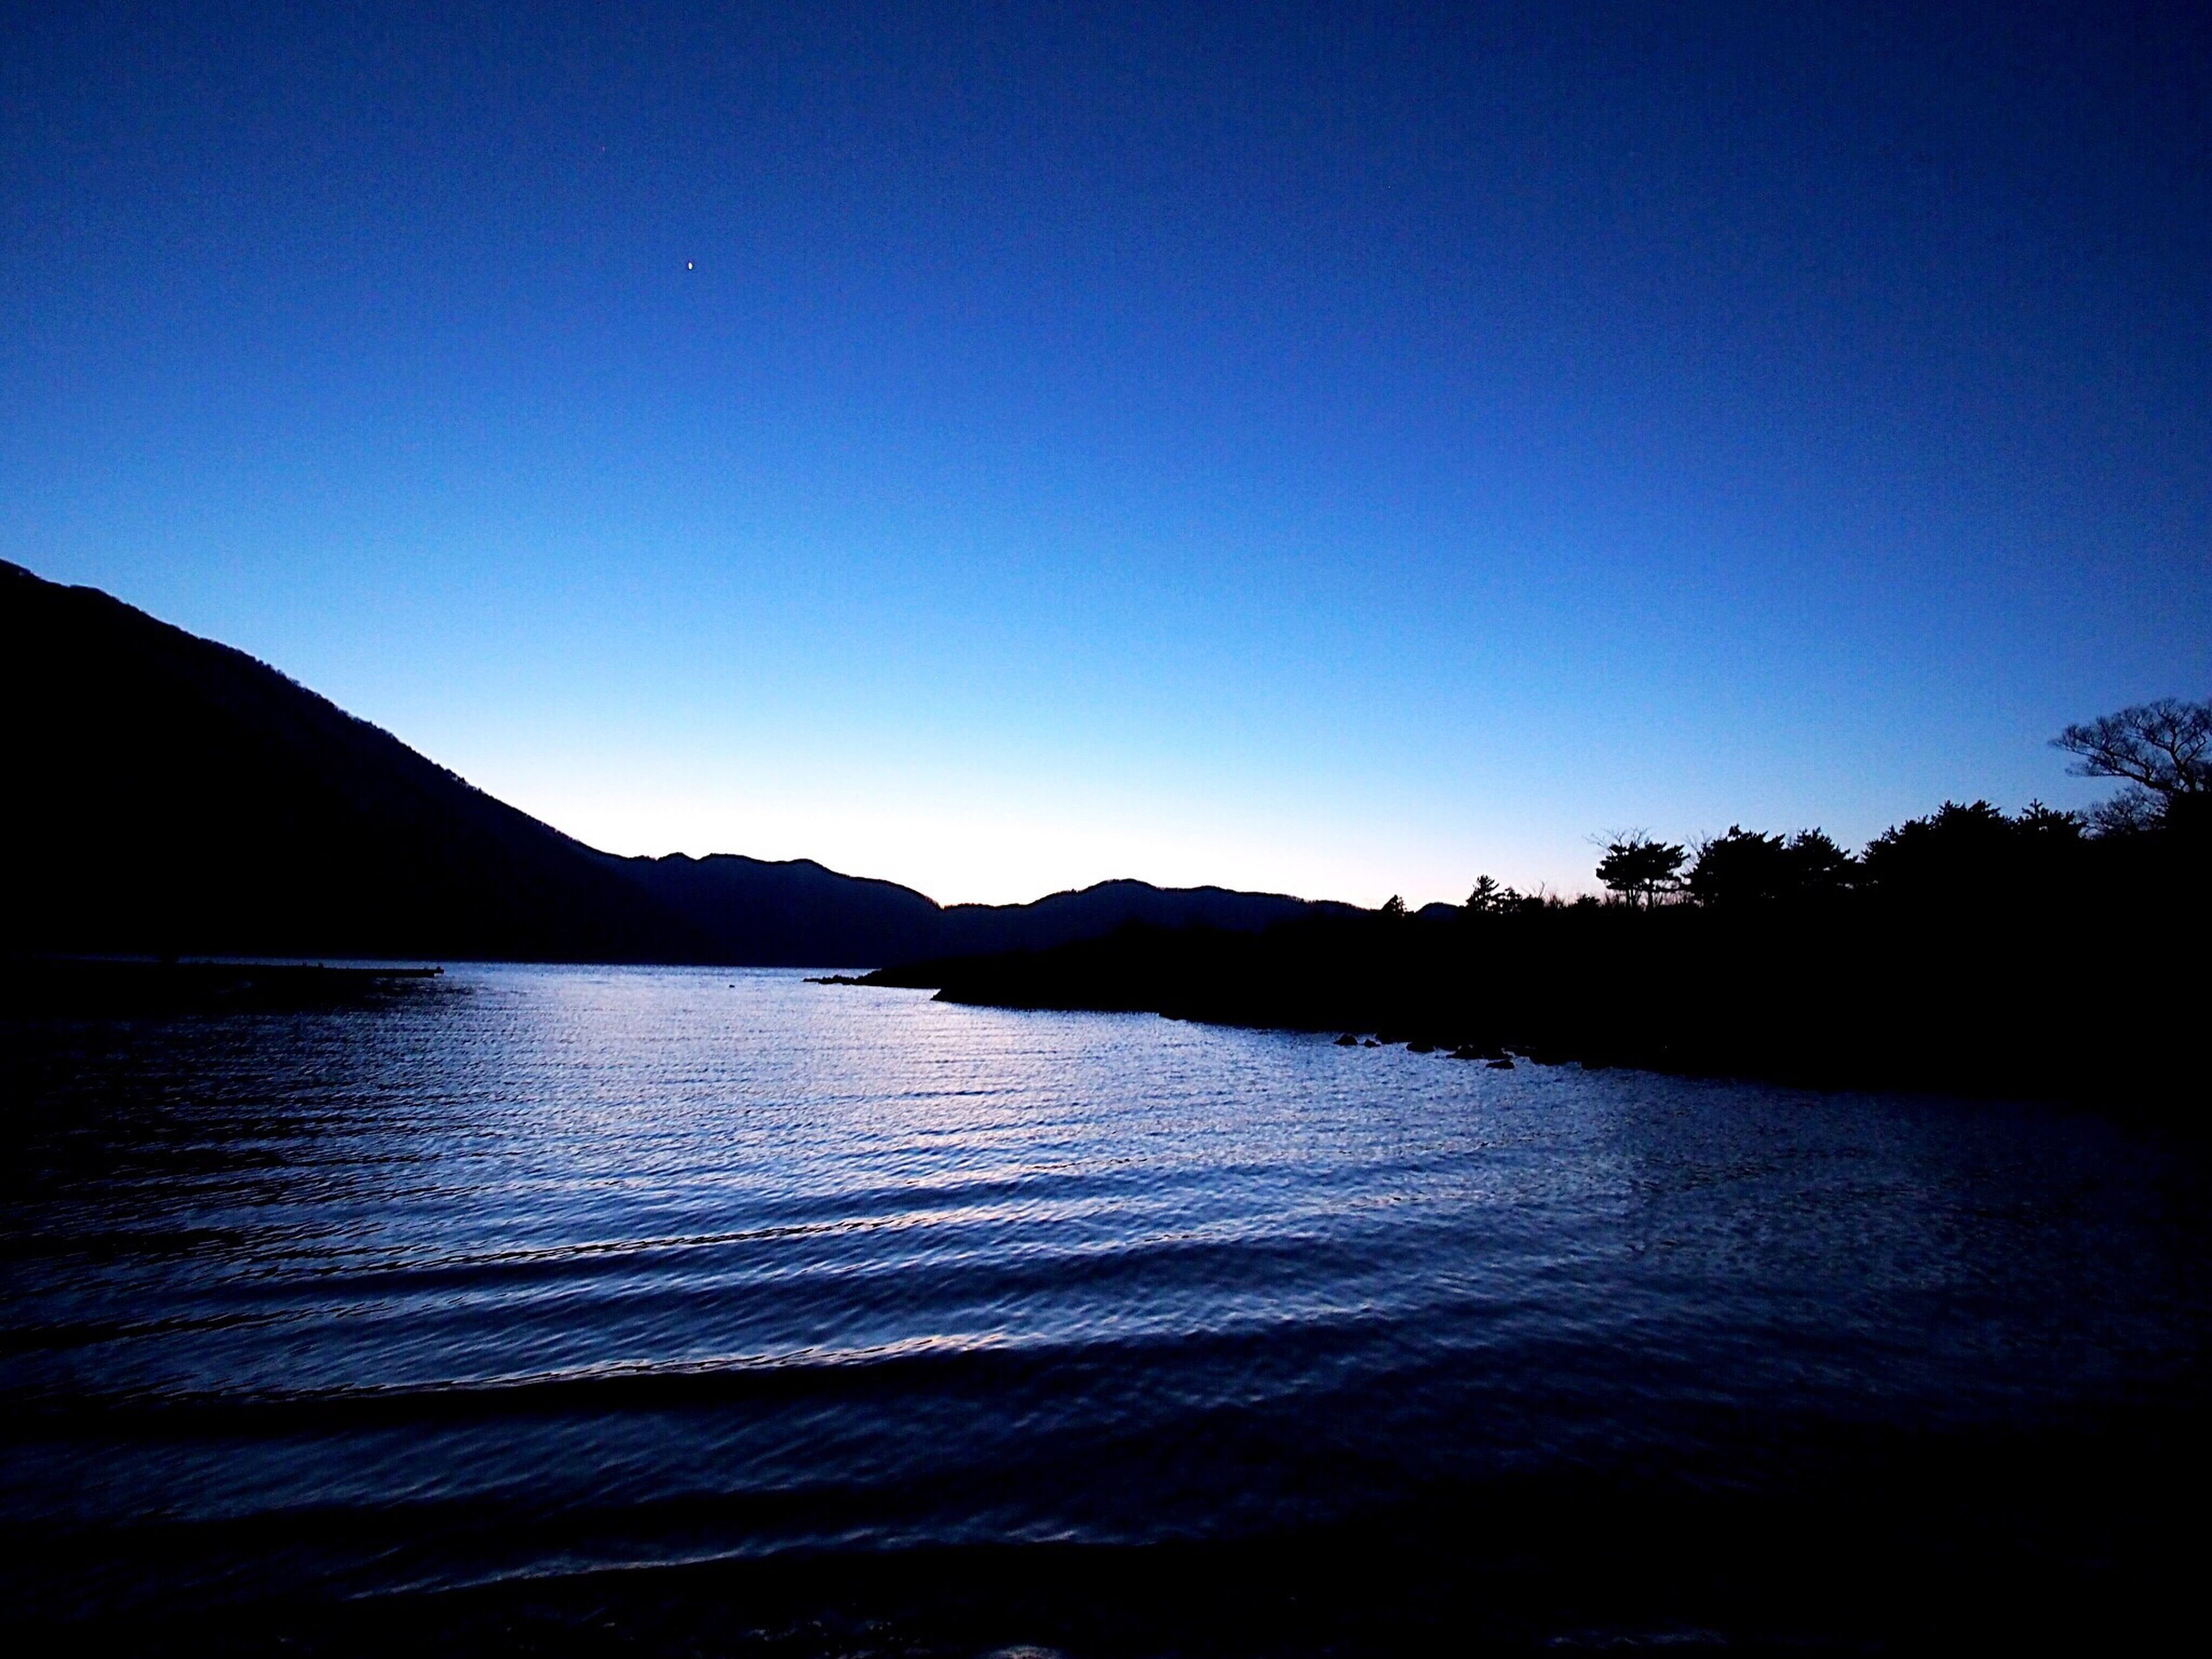 water, reflection, blue, silhouette, nature, tranquil scene, sky, tranquility, beauty in nature, scenics, clear sky, outdoors, no people, mountain, tree, day